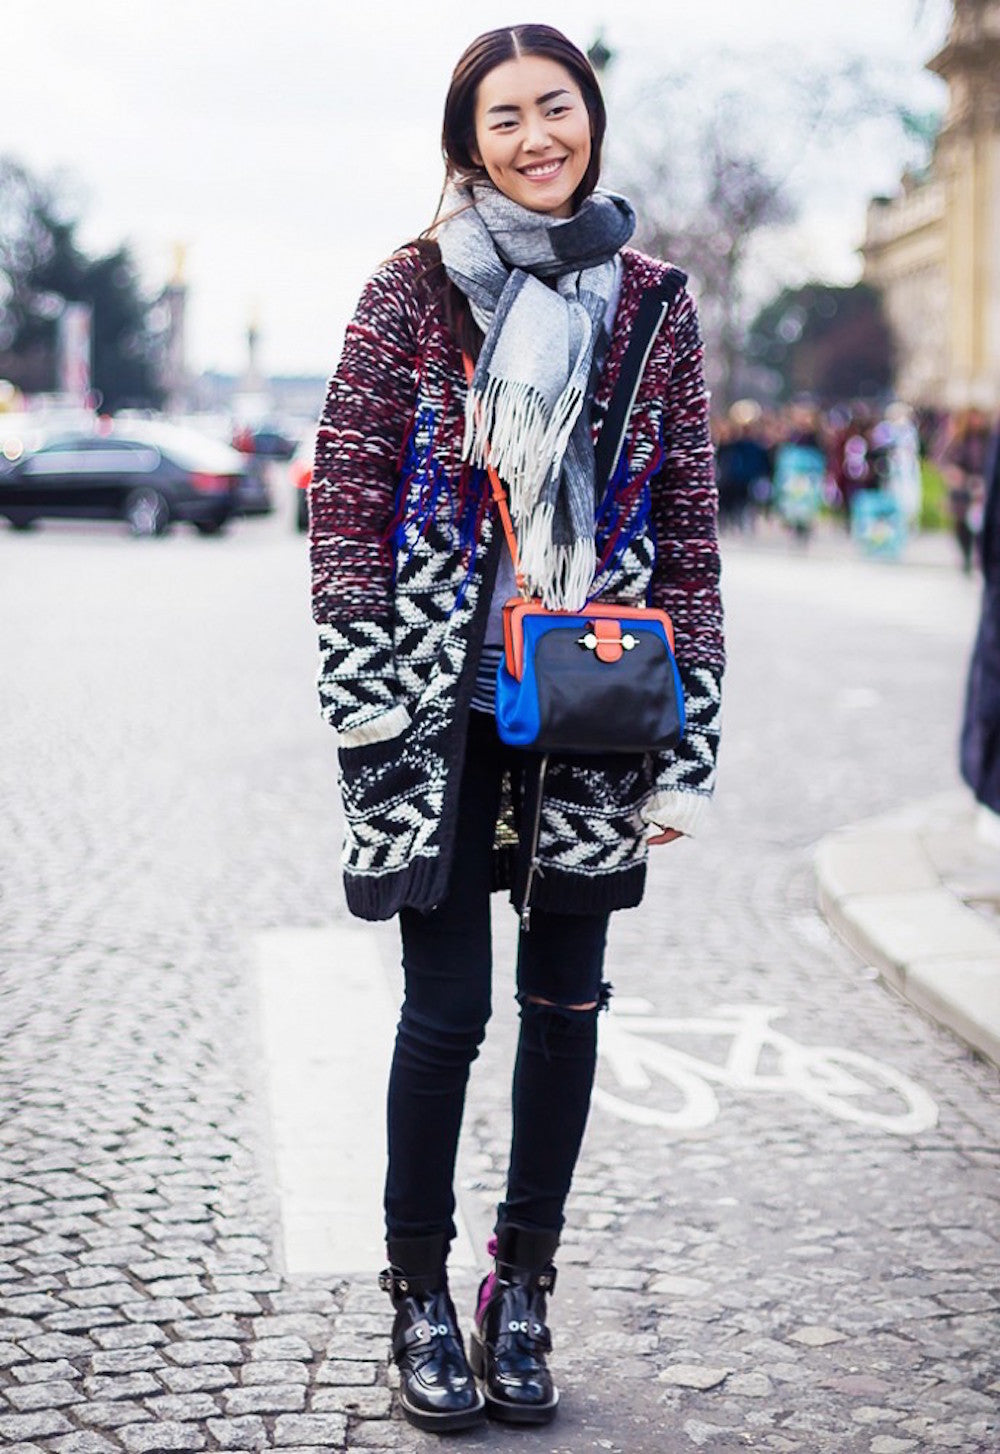 New York Fashion Week Spring 2015 Street Style - Liu Wen